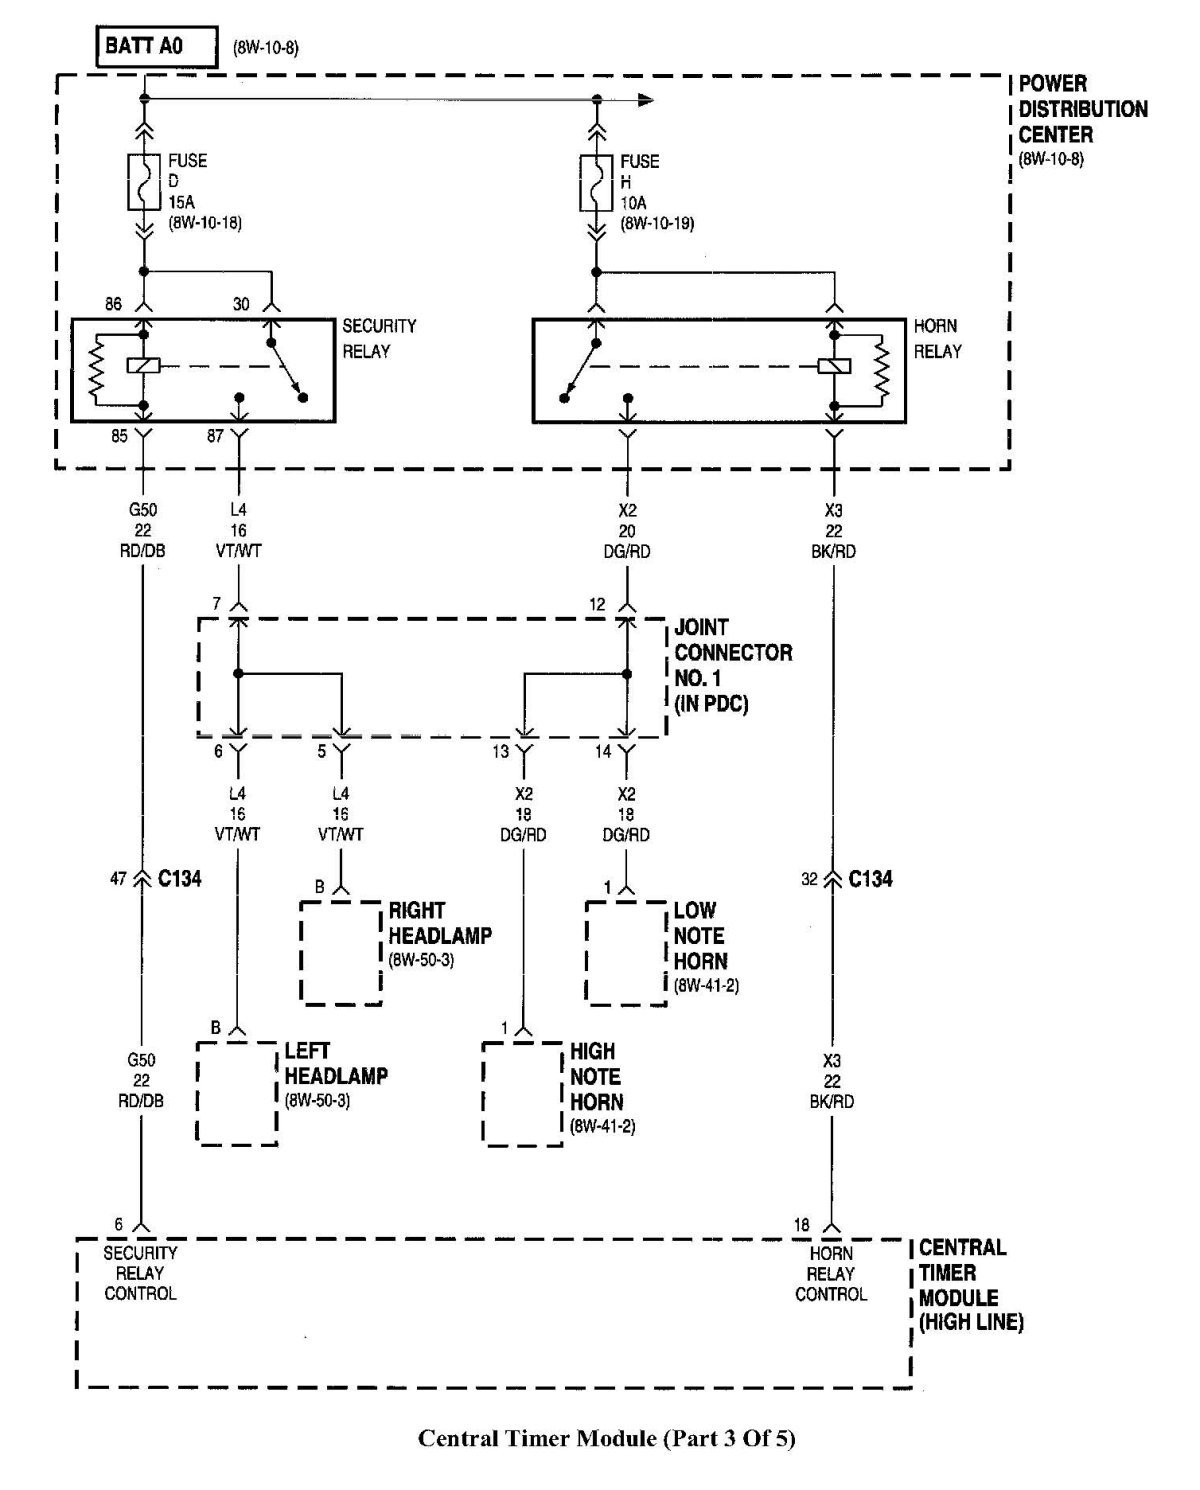 98 Dodge Trailer Wiring Diagram | Wiring Diagram - 2003 Dodge Ram 2500 Trailer Wiring Diagram